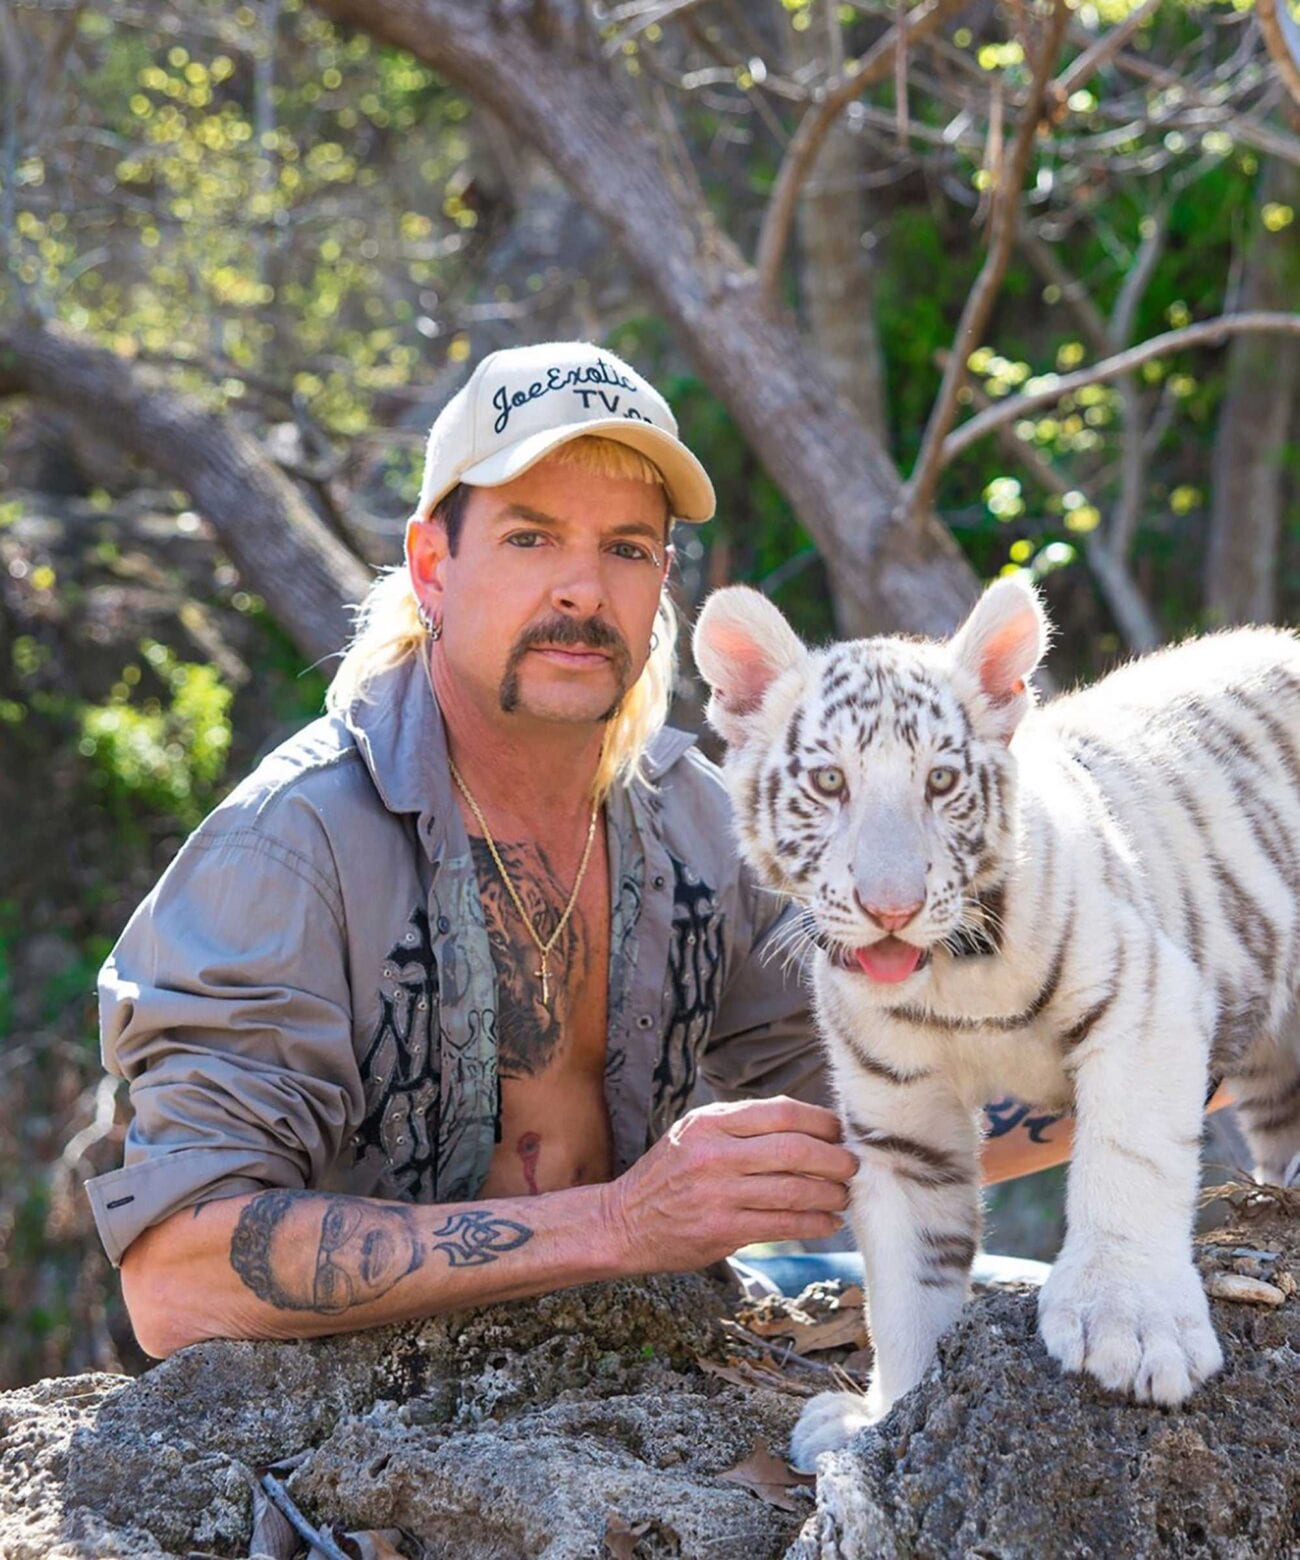 Still wondering if the Netflix hit 'Tiger King' was real or faked? Separate fact from fiction in this bizarre docuseries.